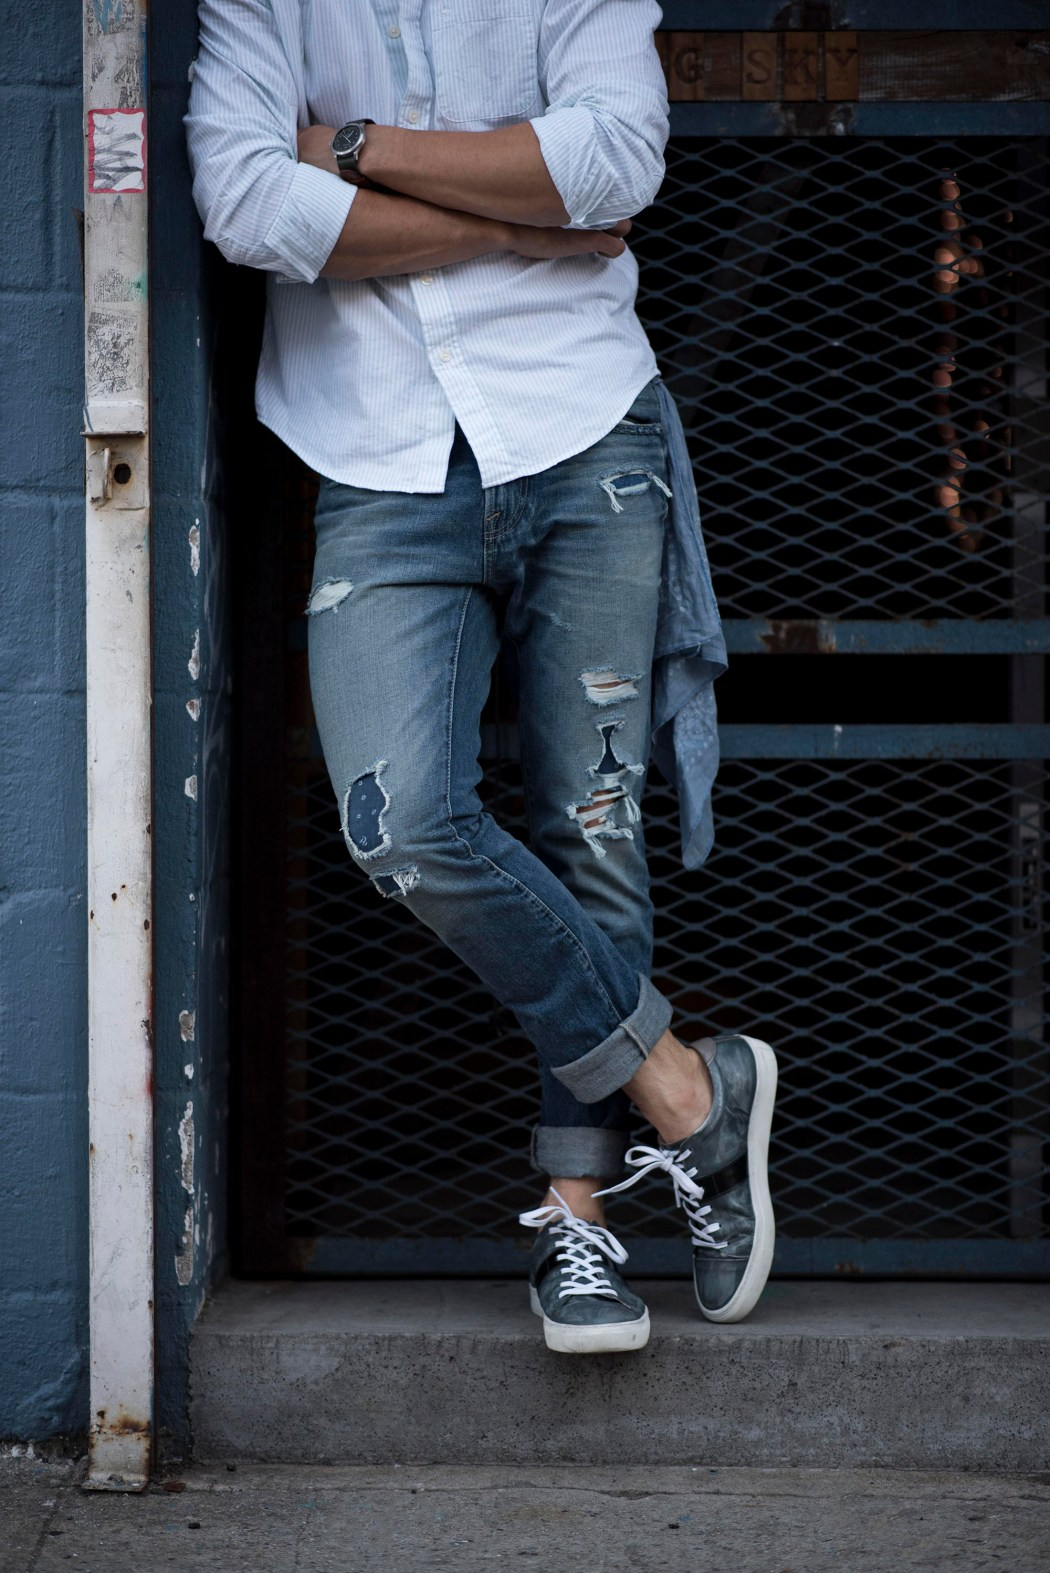 Abercrombie Fitch Jeans men's style